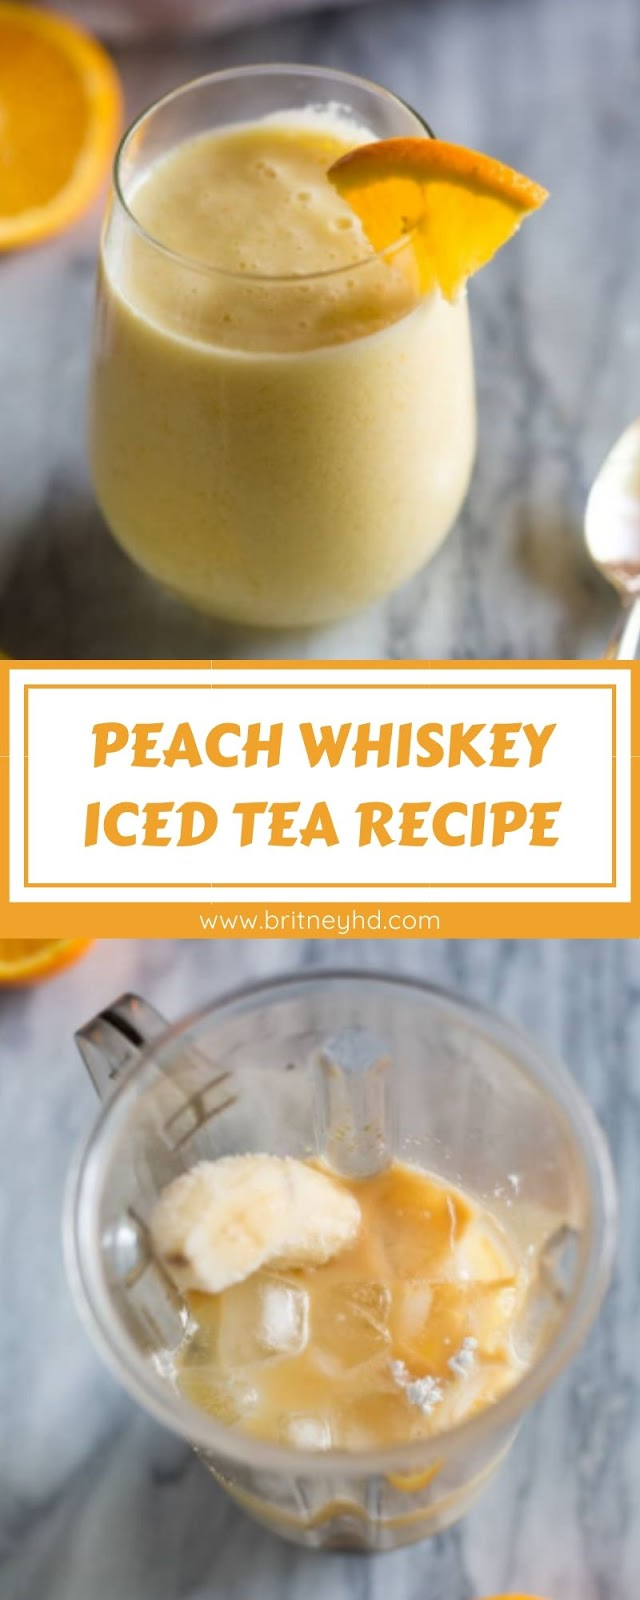 PEACH WHISKEY ICED TEA RECIPE